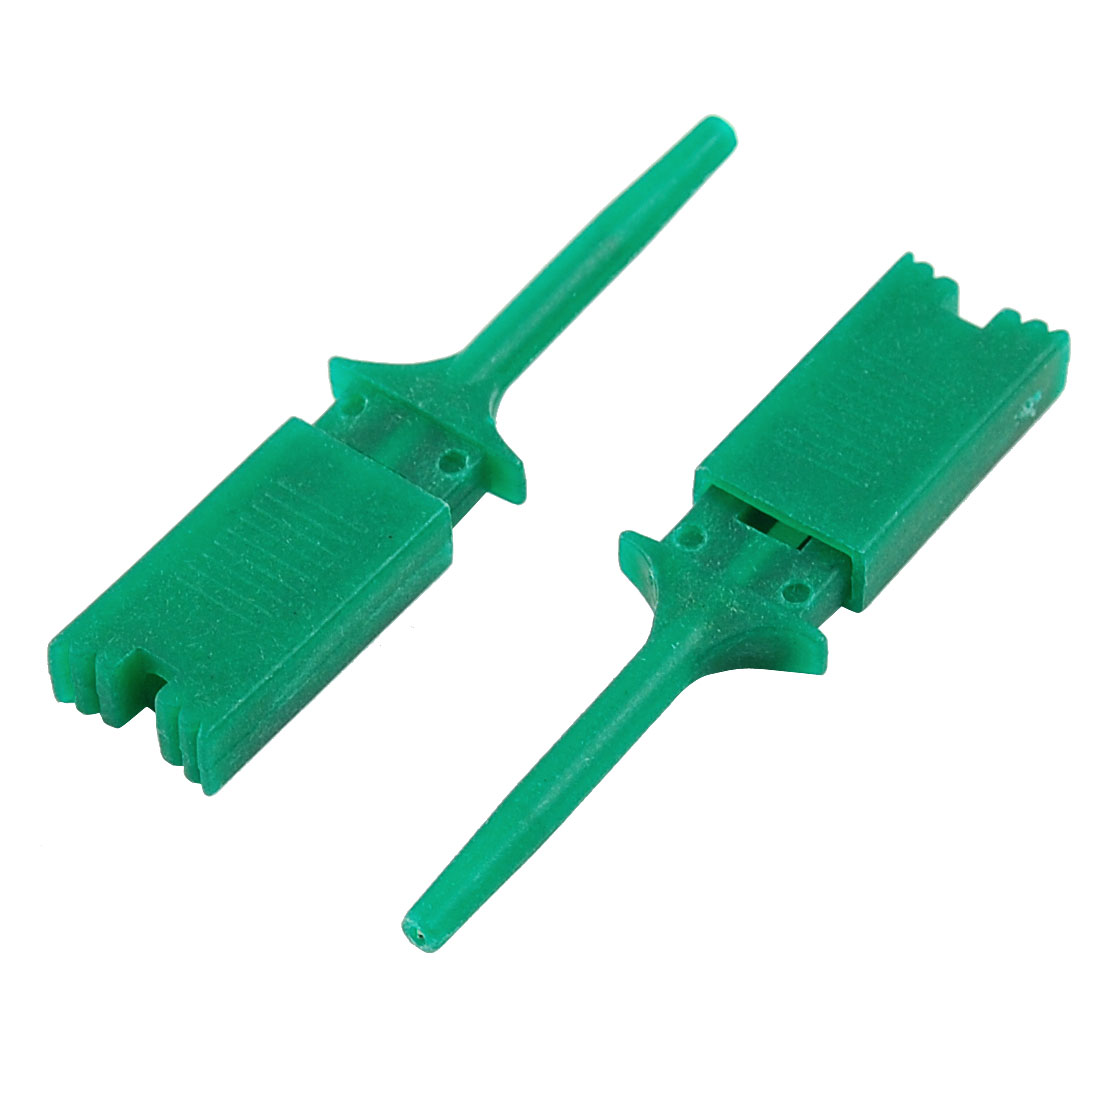 10 Pcs Green Plastic Multimeter Test Probe Cable SMD IC Hook Clip Grabbers 1.9""